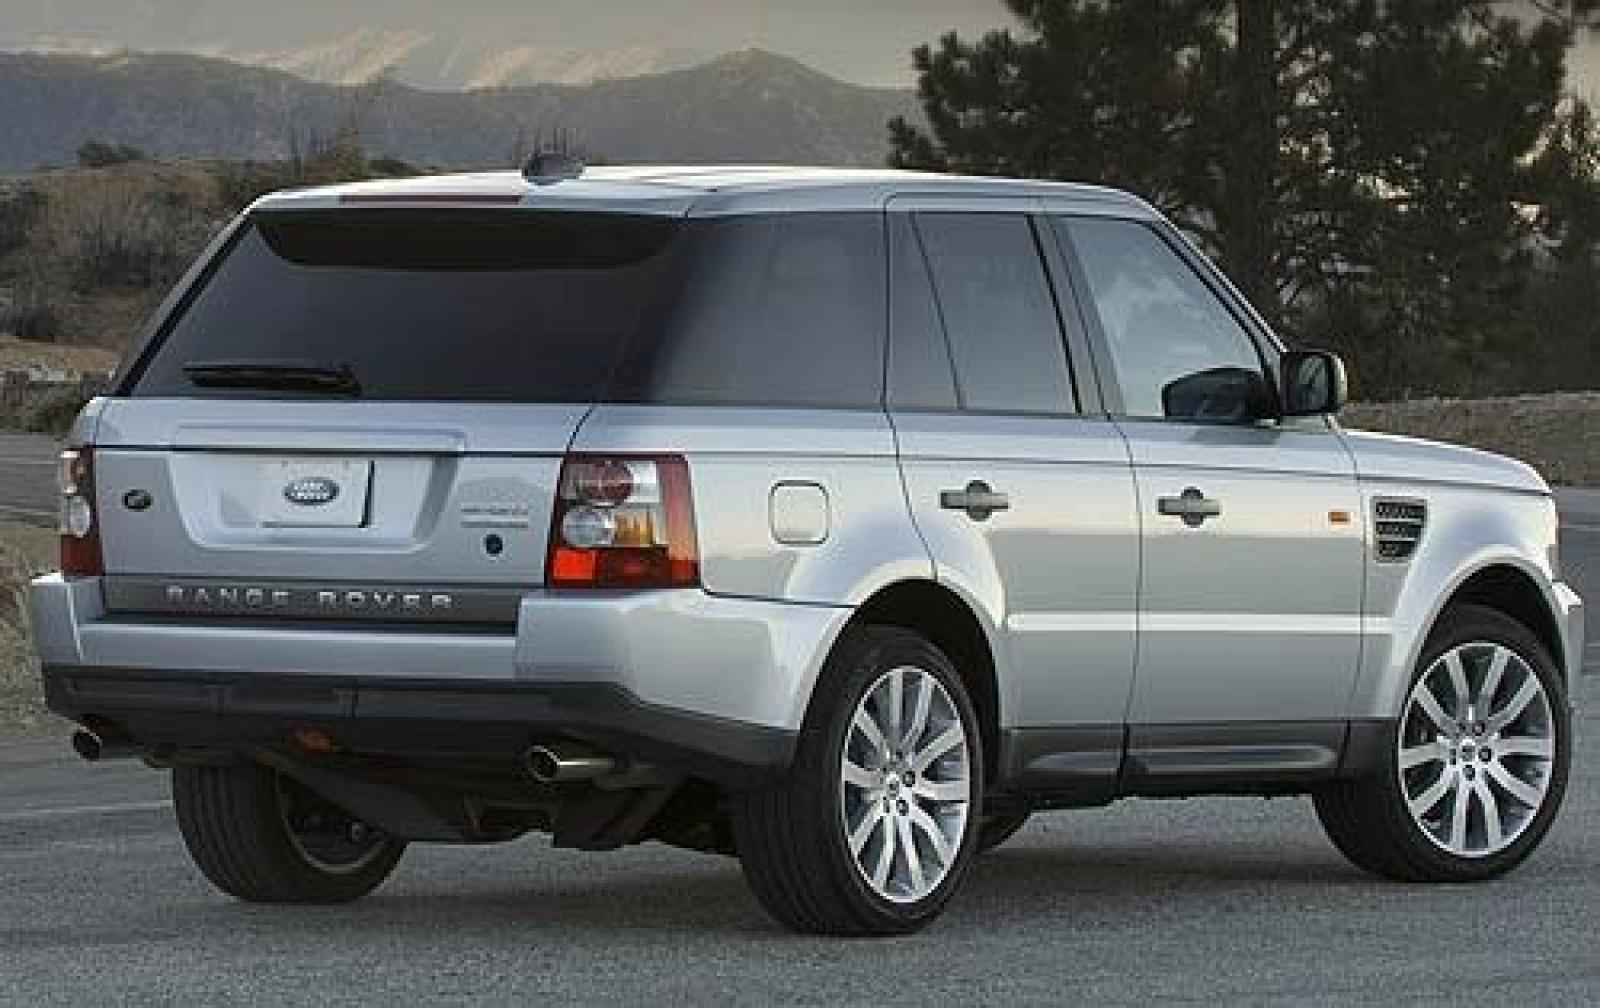 2008 land rover range rover sport information and photos zombiedrive. Black Bedroom Furniture Sets. Home Design Ideas